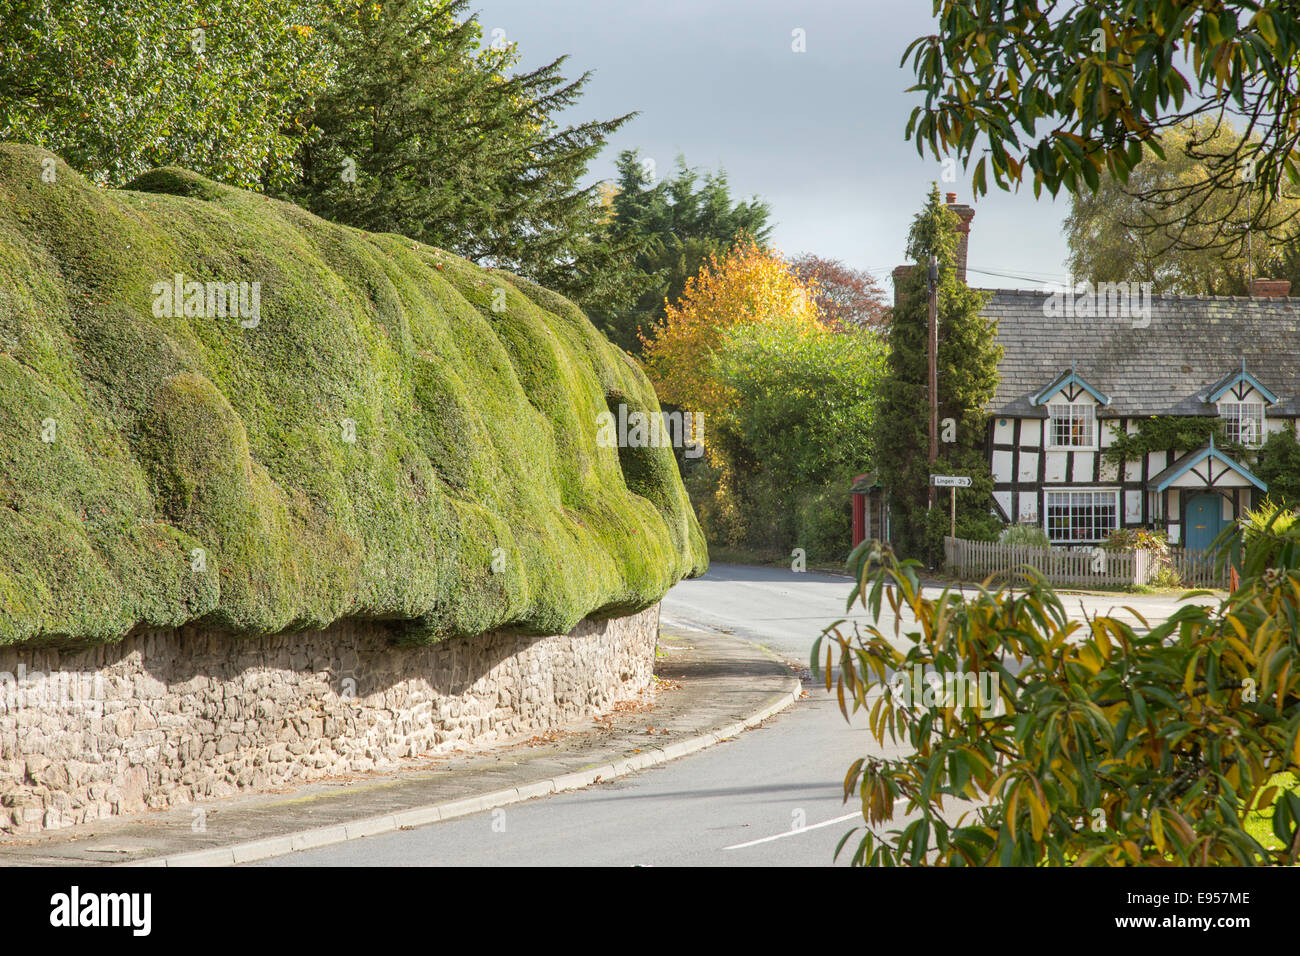 The rural village of Brampton Bryan and its wonderful Yew hedge,  Herefordshire, England - Stock Image